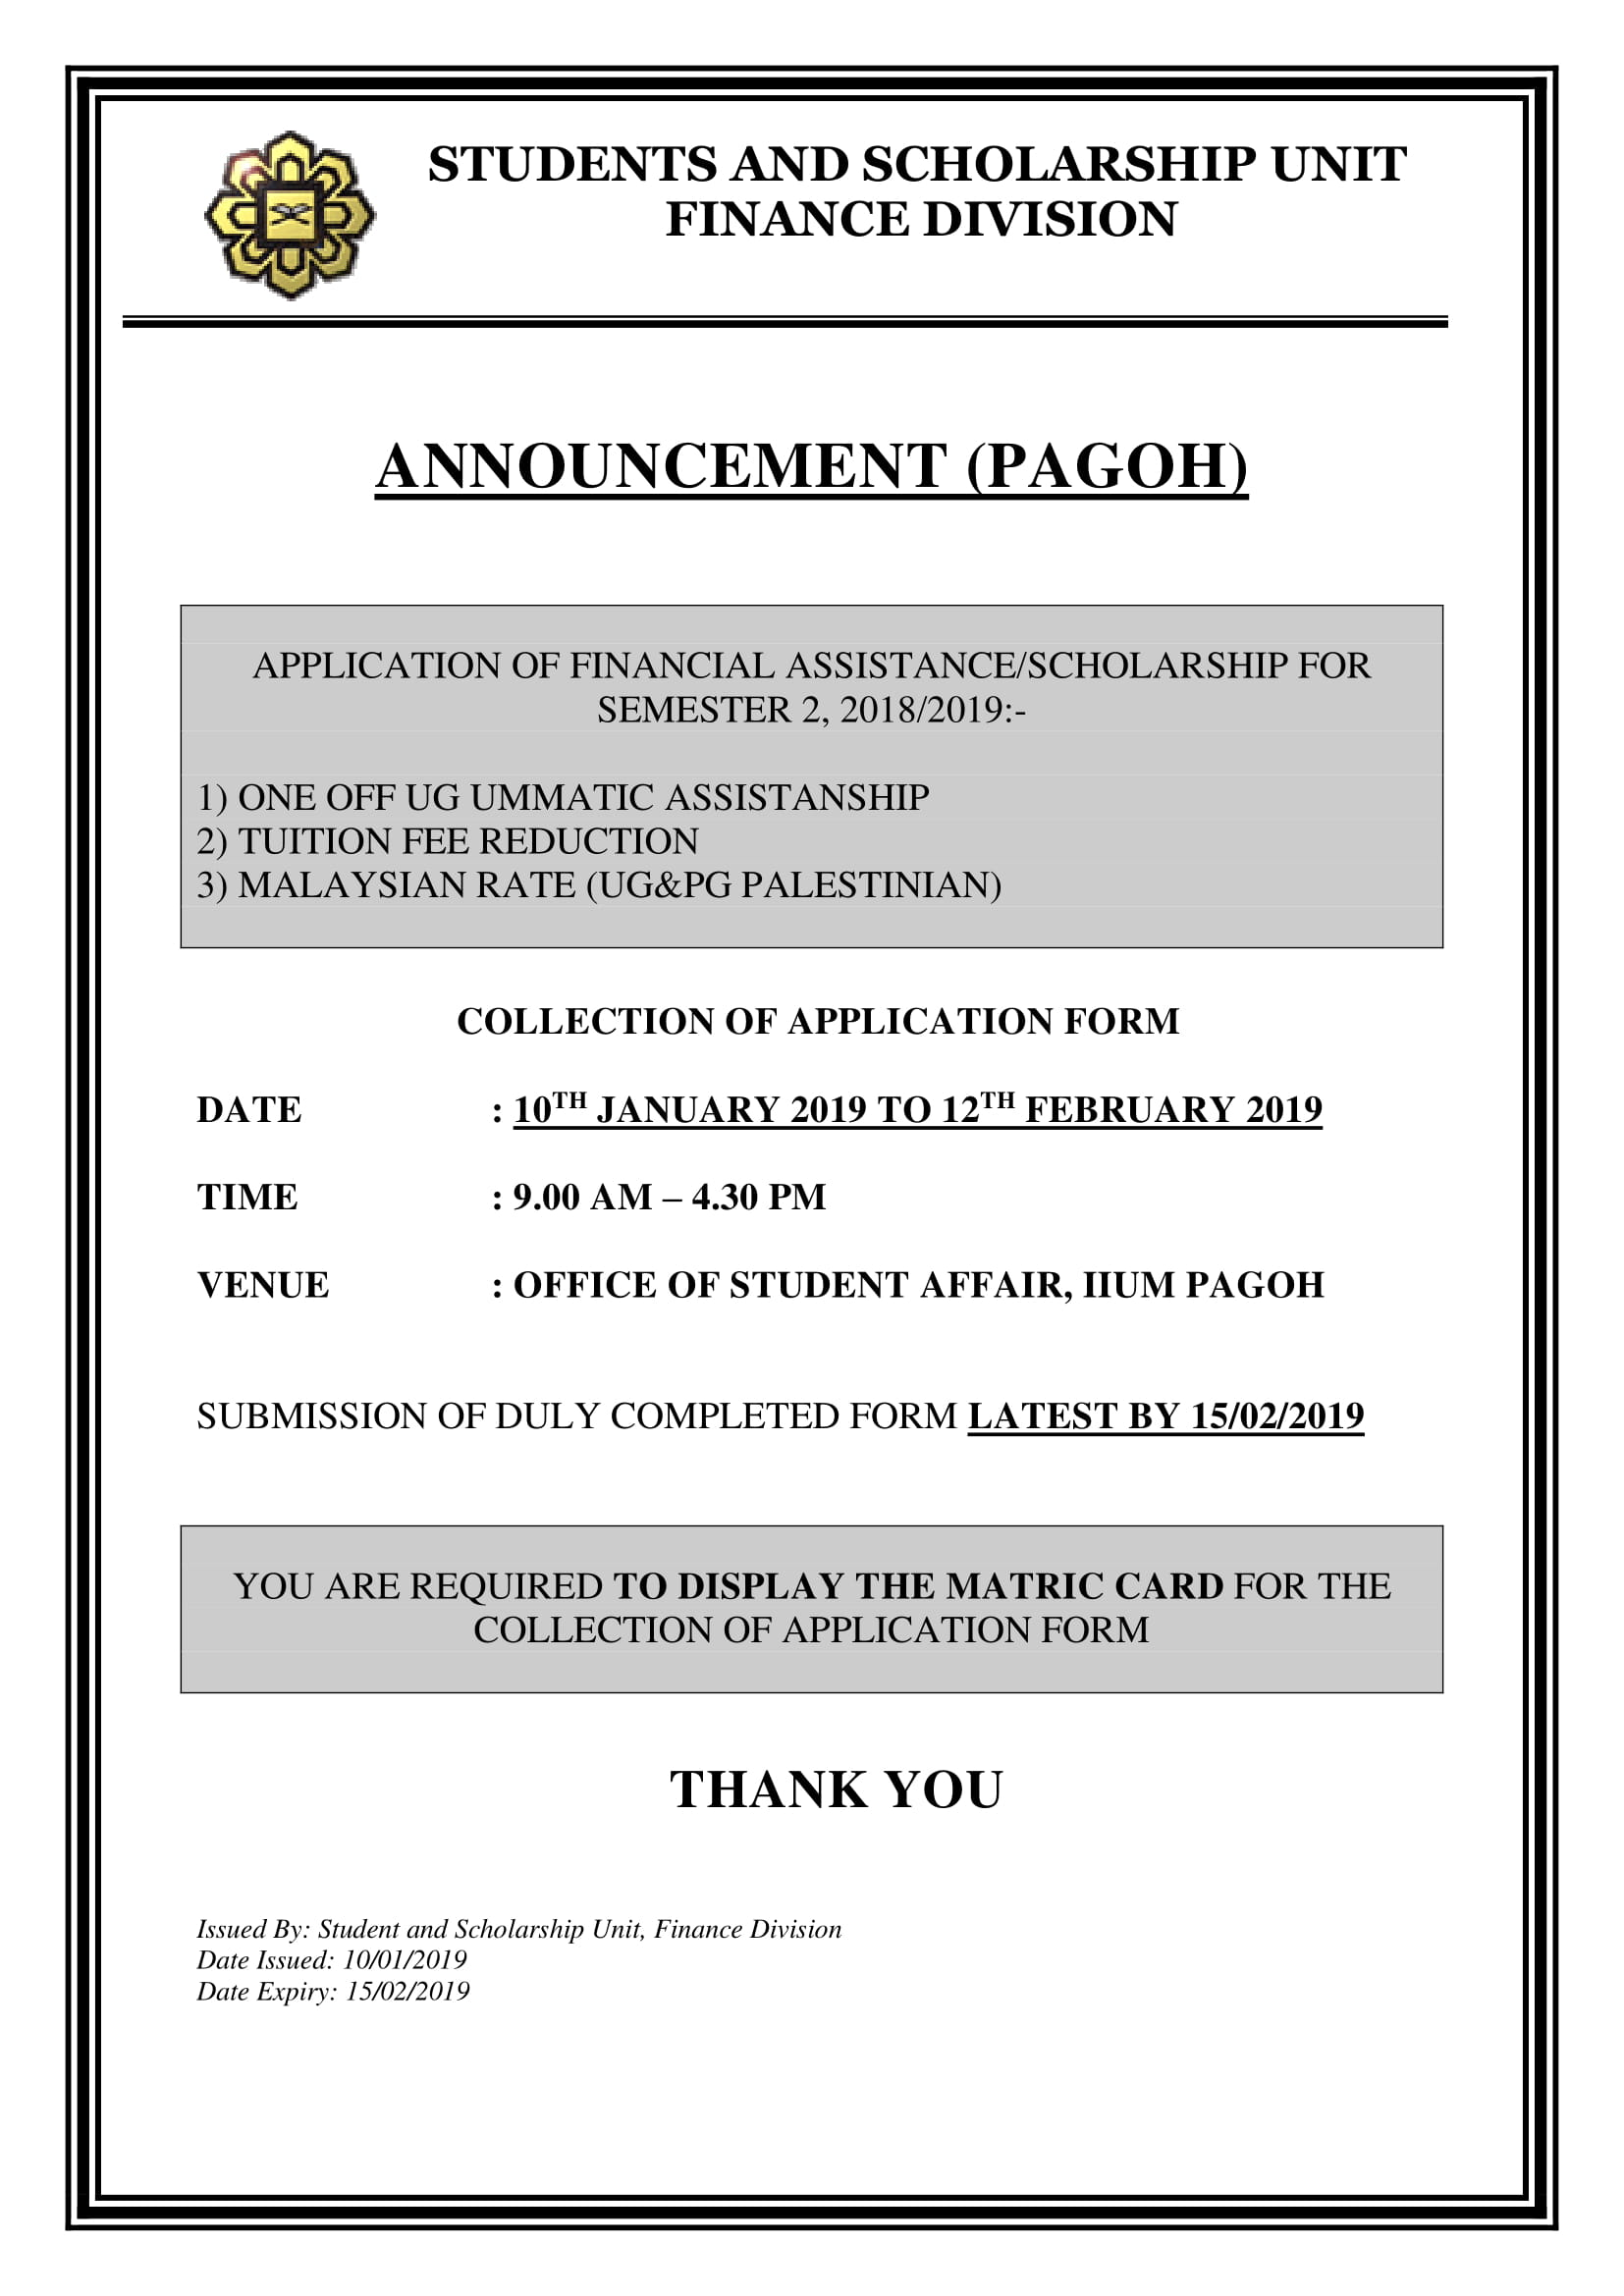 IFAC ANNOUNCEMENT PAGOH PDF-1